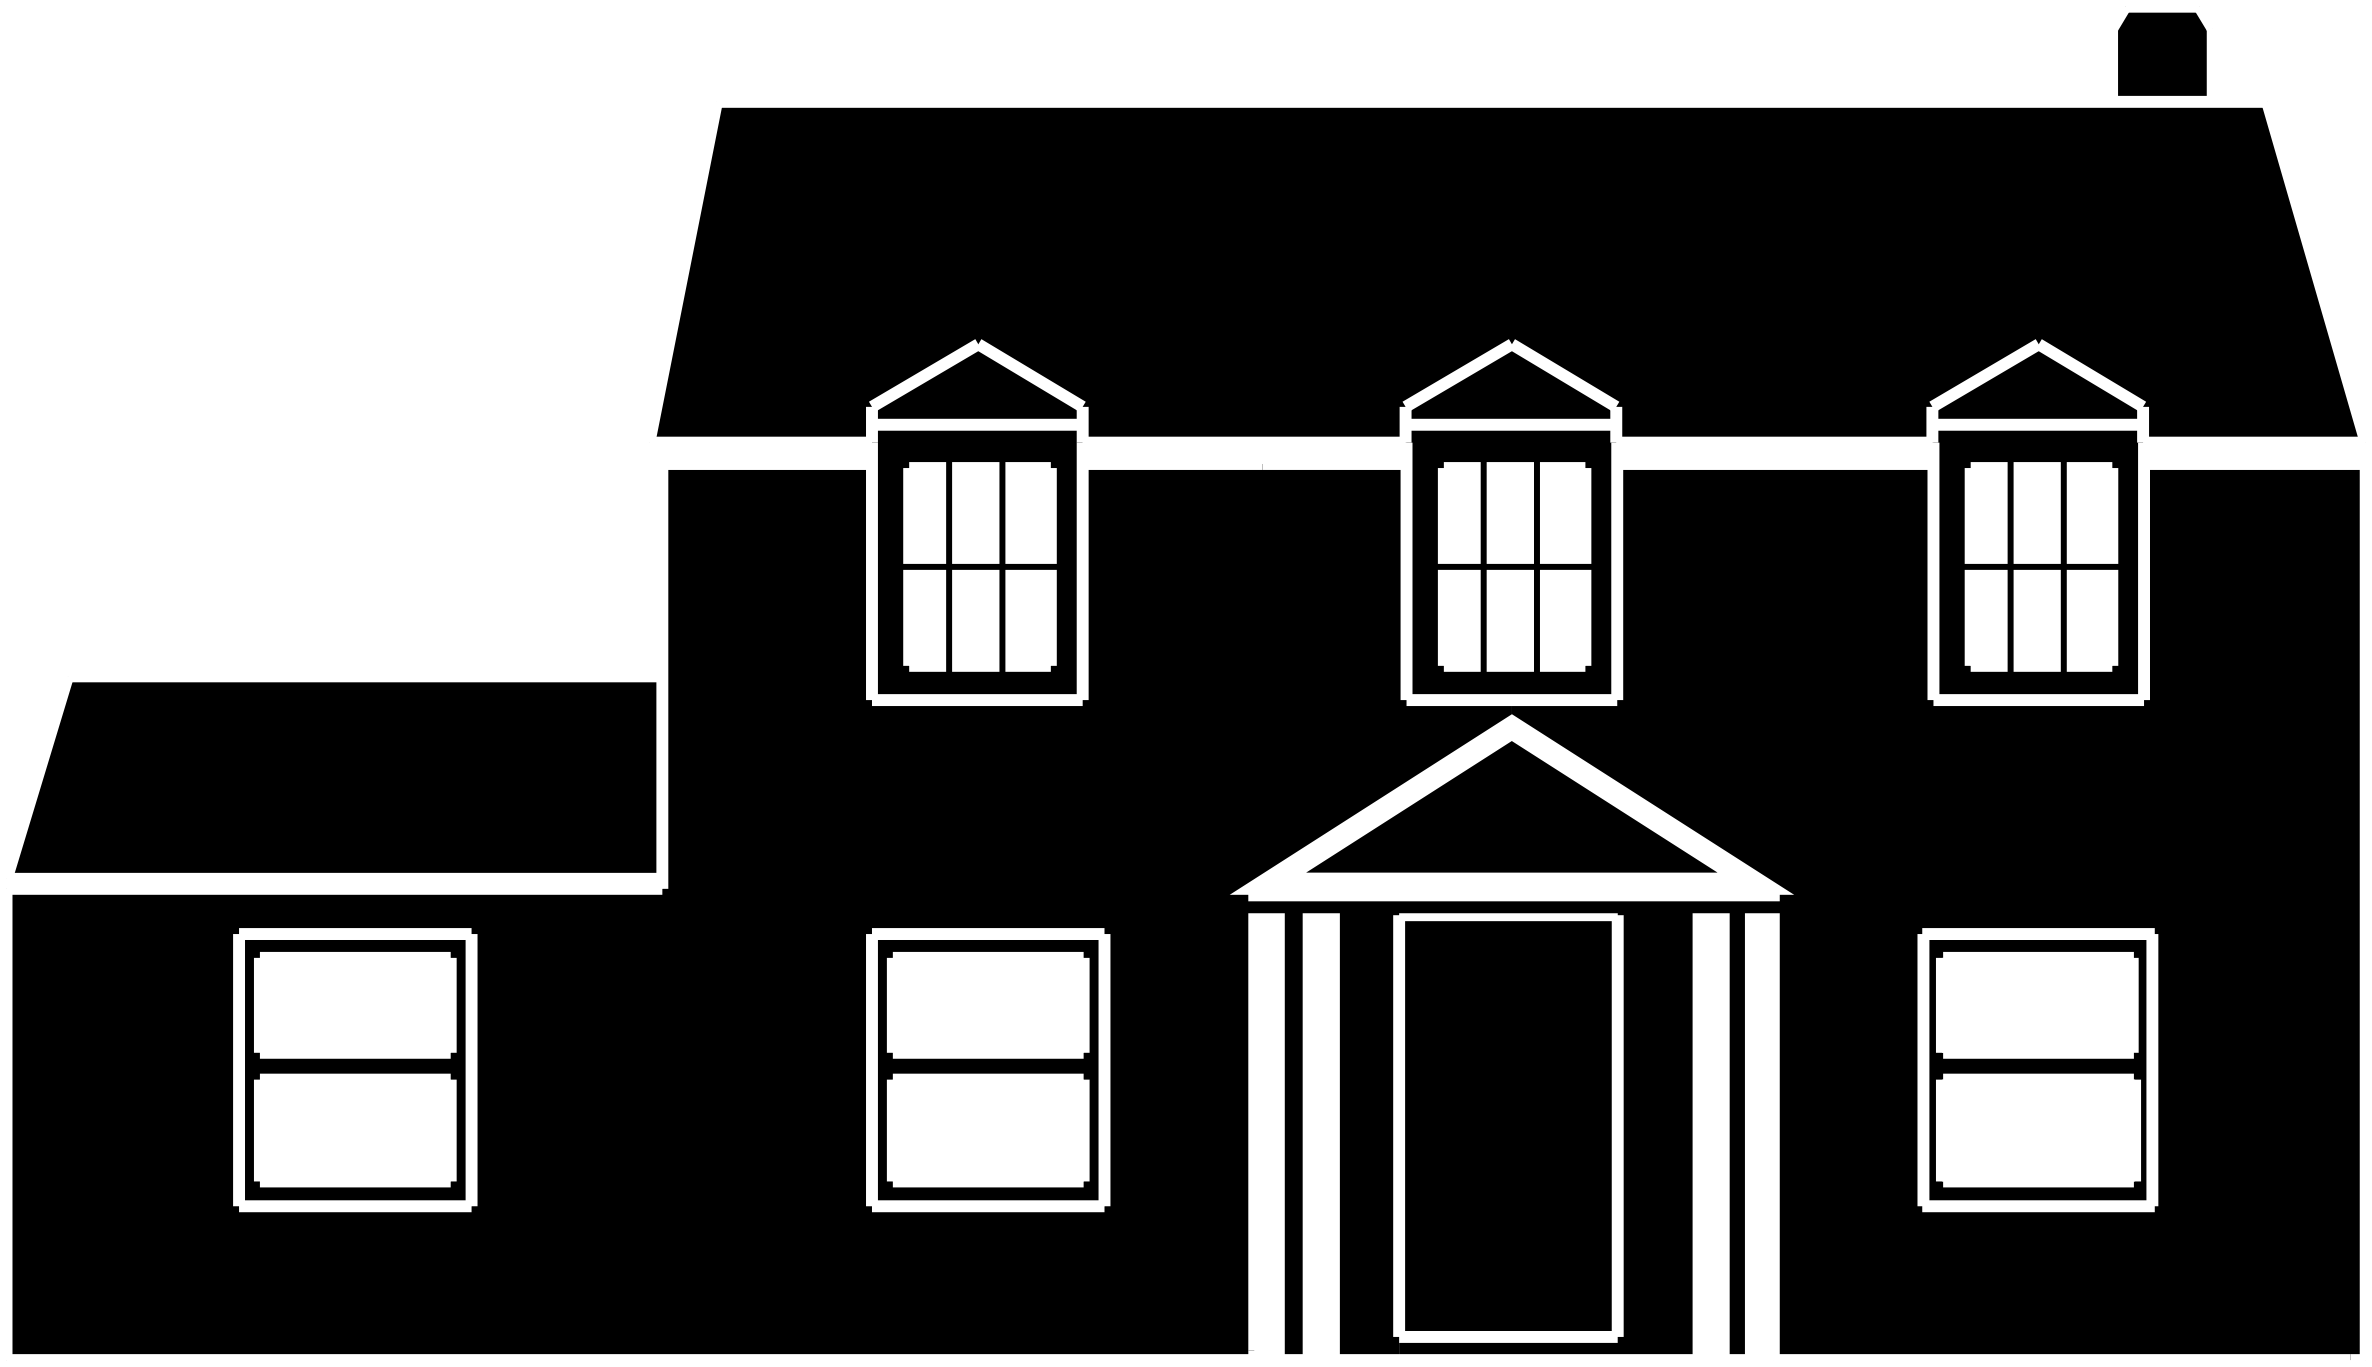 245 House Black And White free clipart.